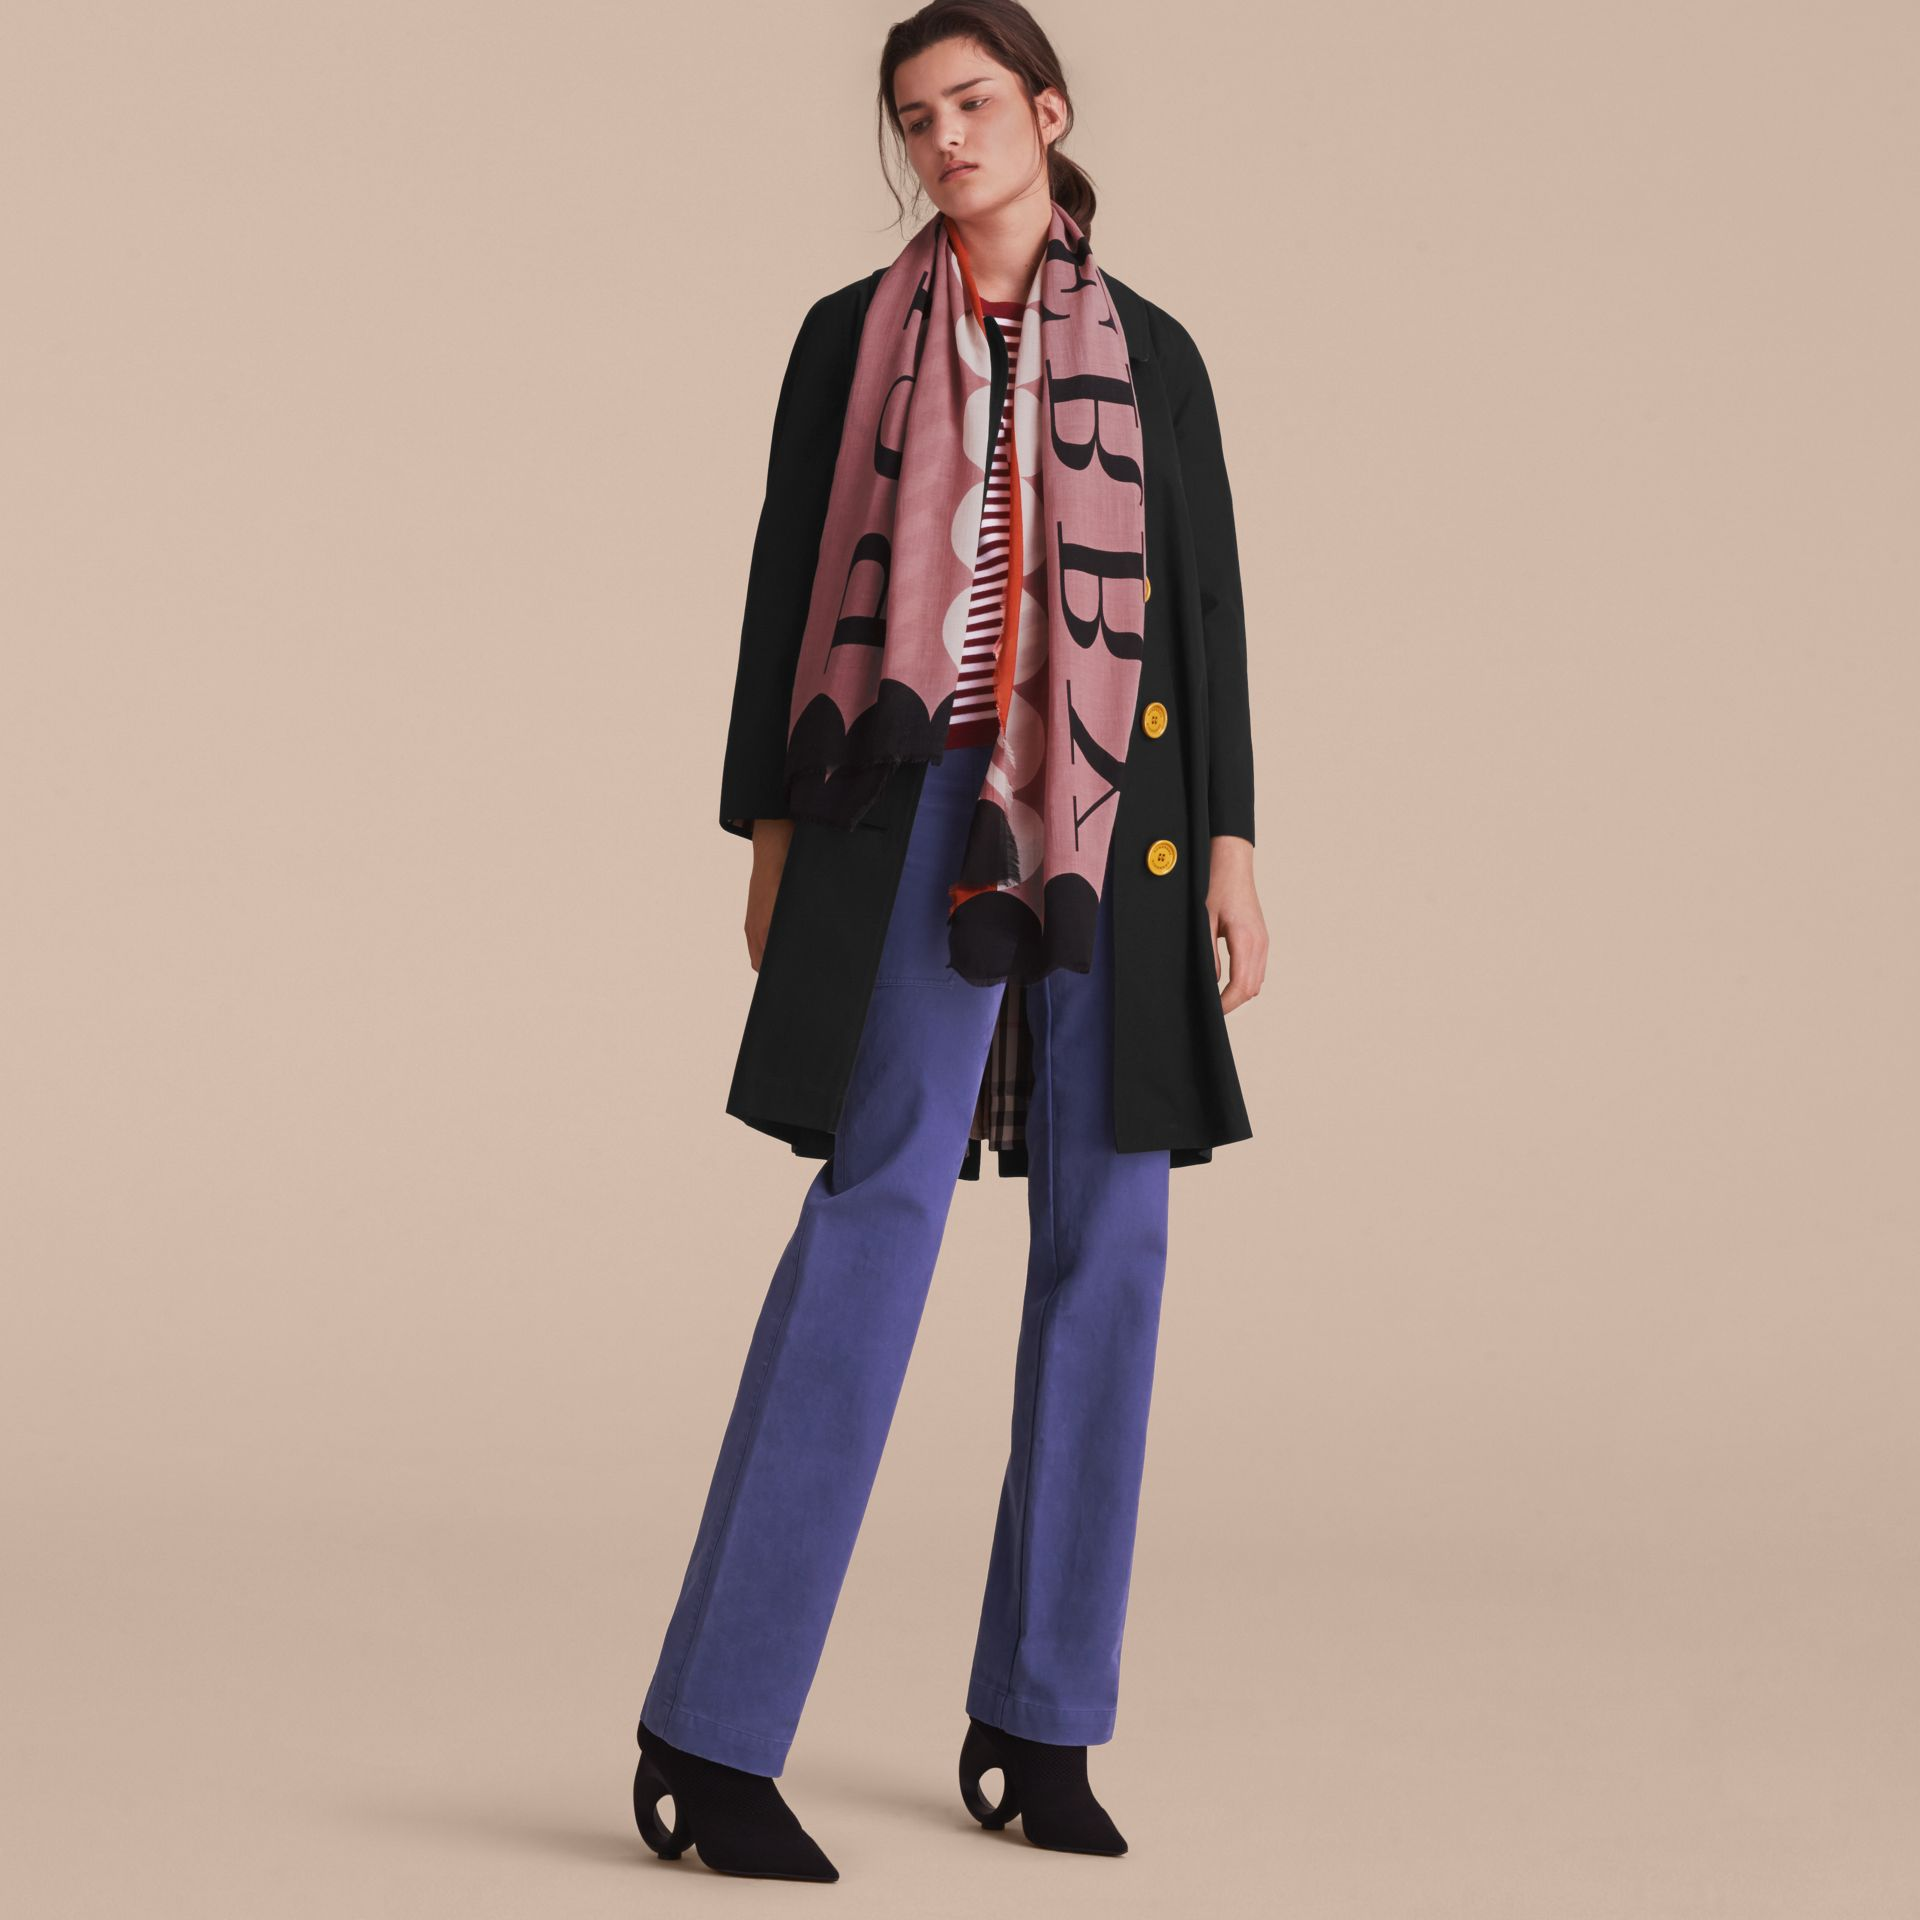 Scallop and Stripe Print Modal Wool Scarf in Dusty Pink - Women | Burberry - gallery image 3